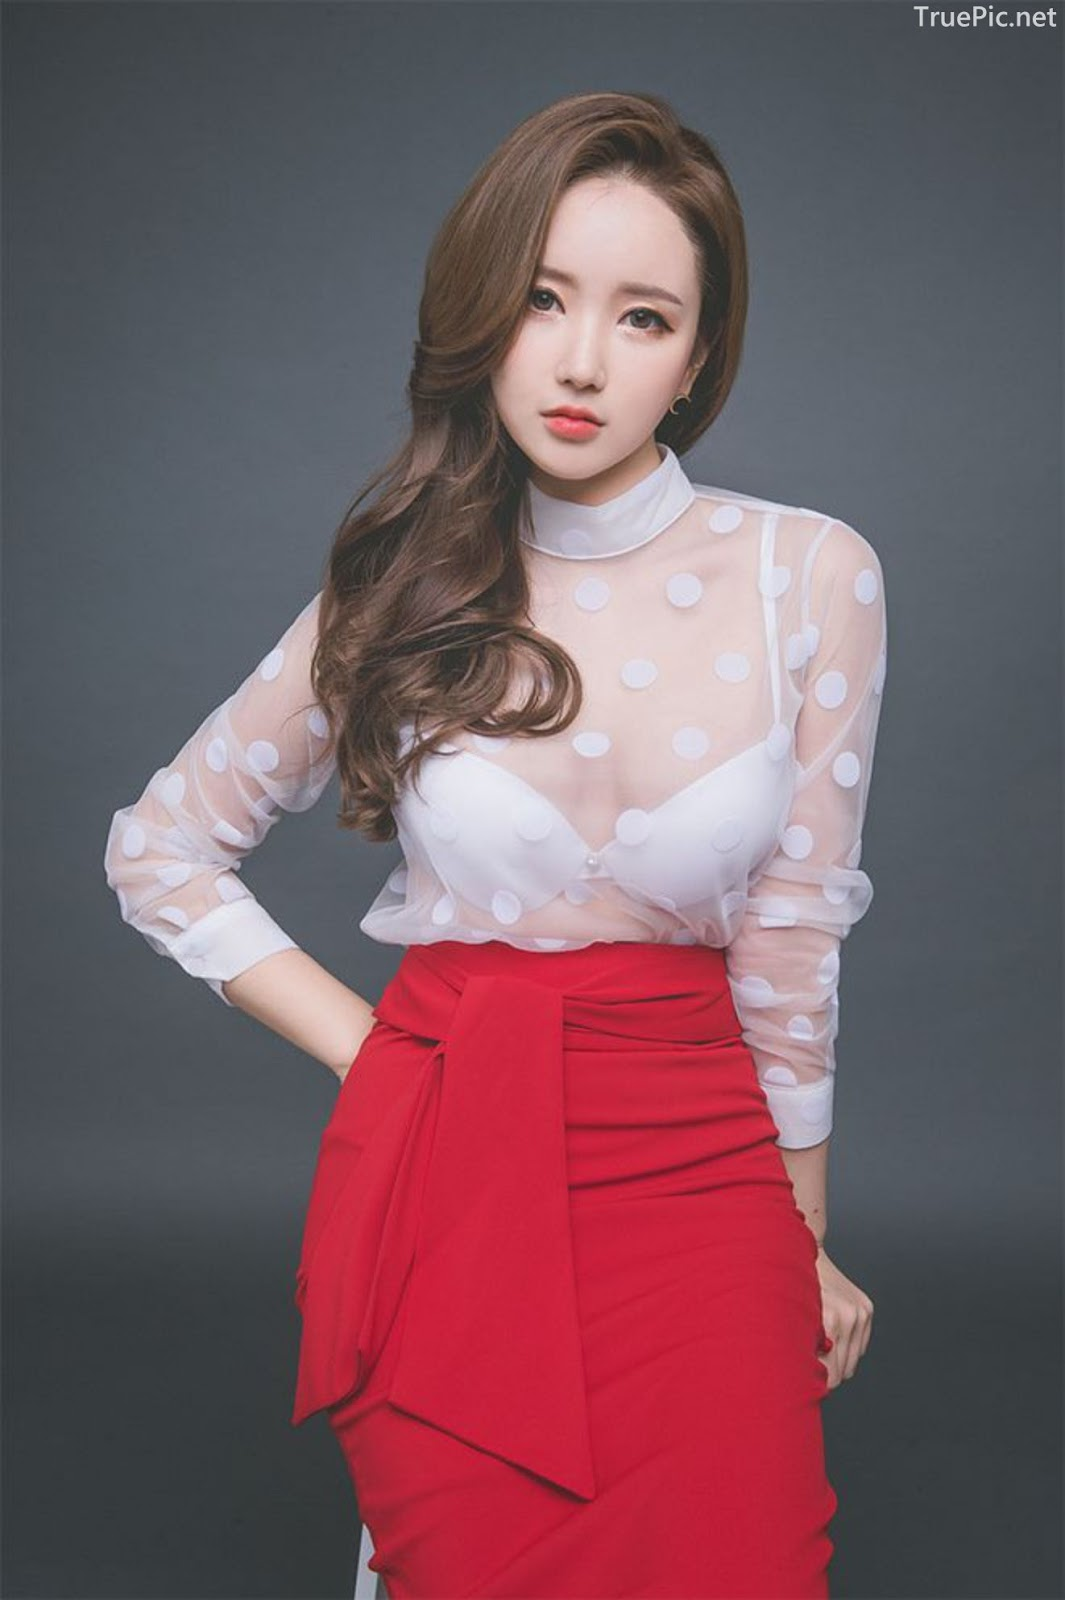 Lee Yeon Jeong - Indoor Photoshoot Collection - Korean fashion model - Part 5 - Picture 10